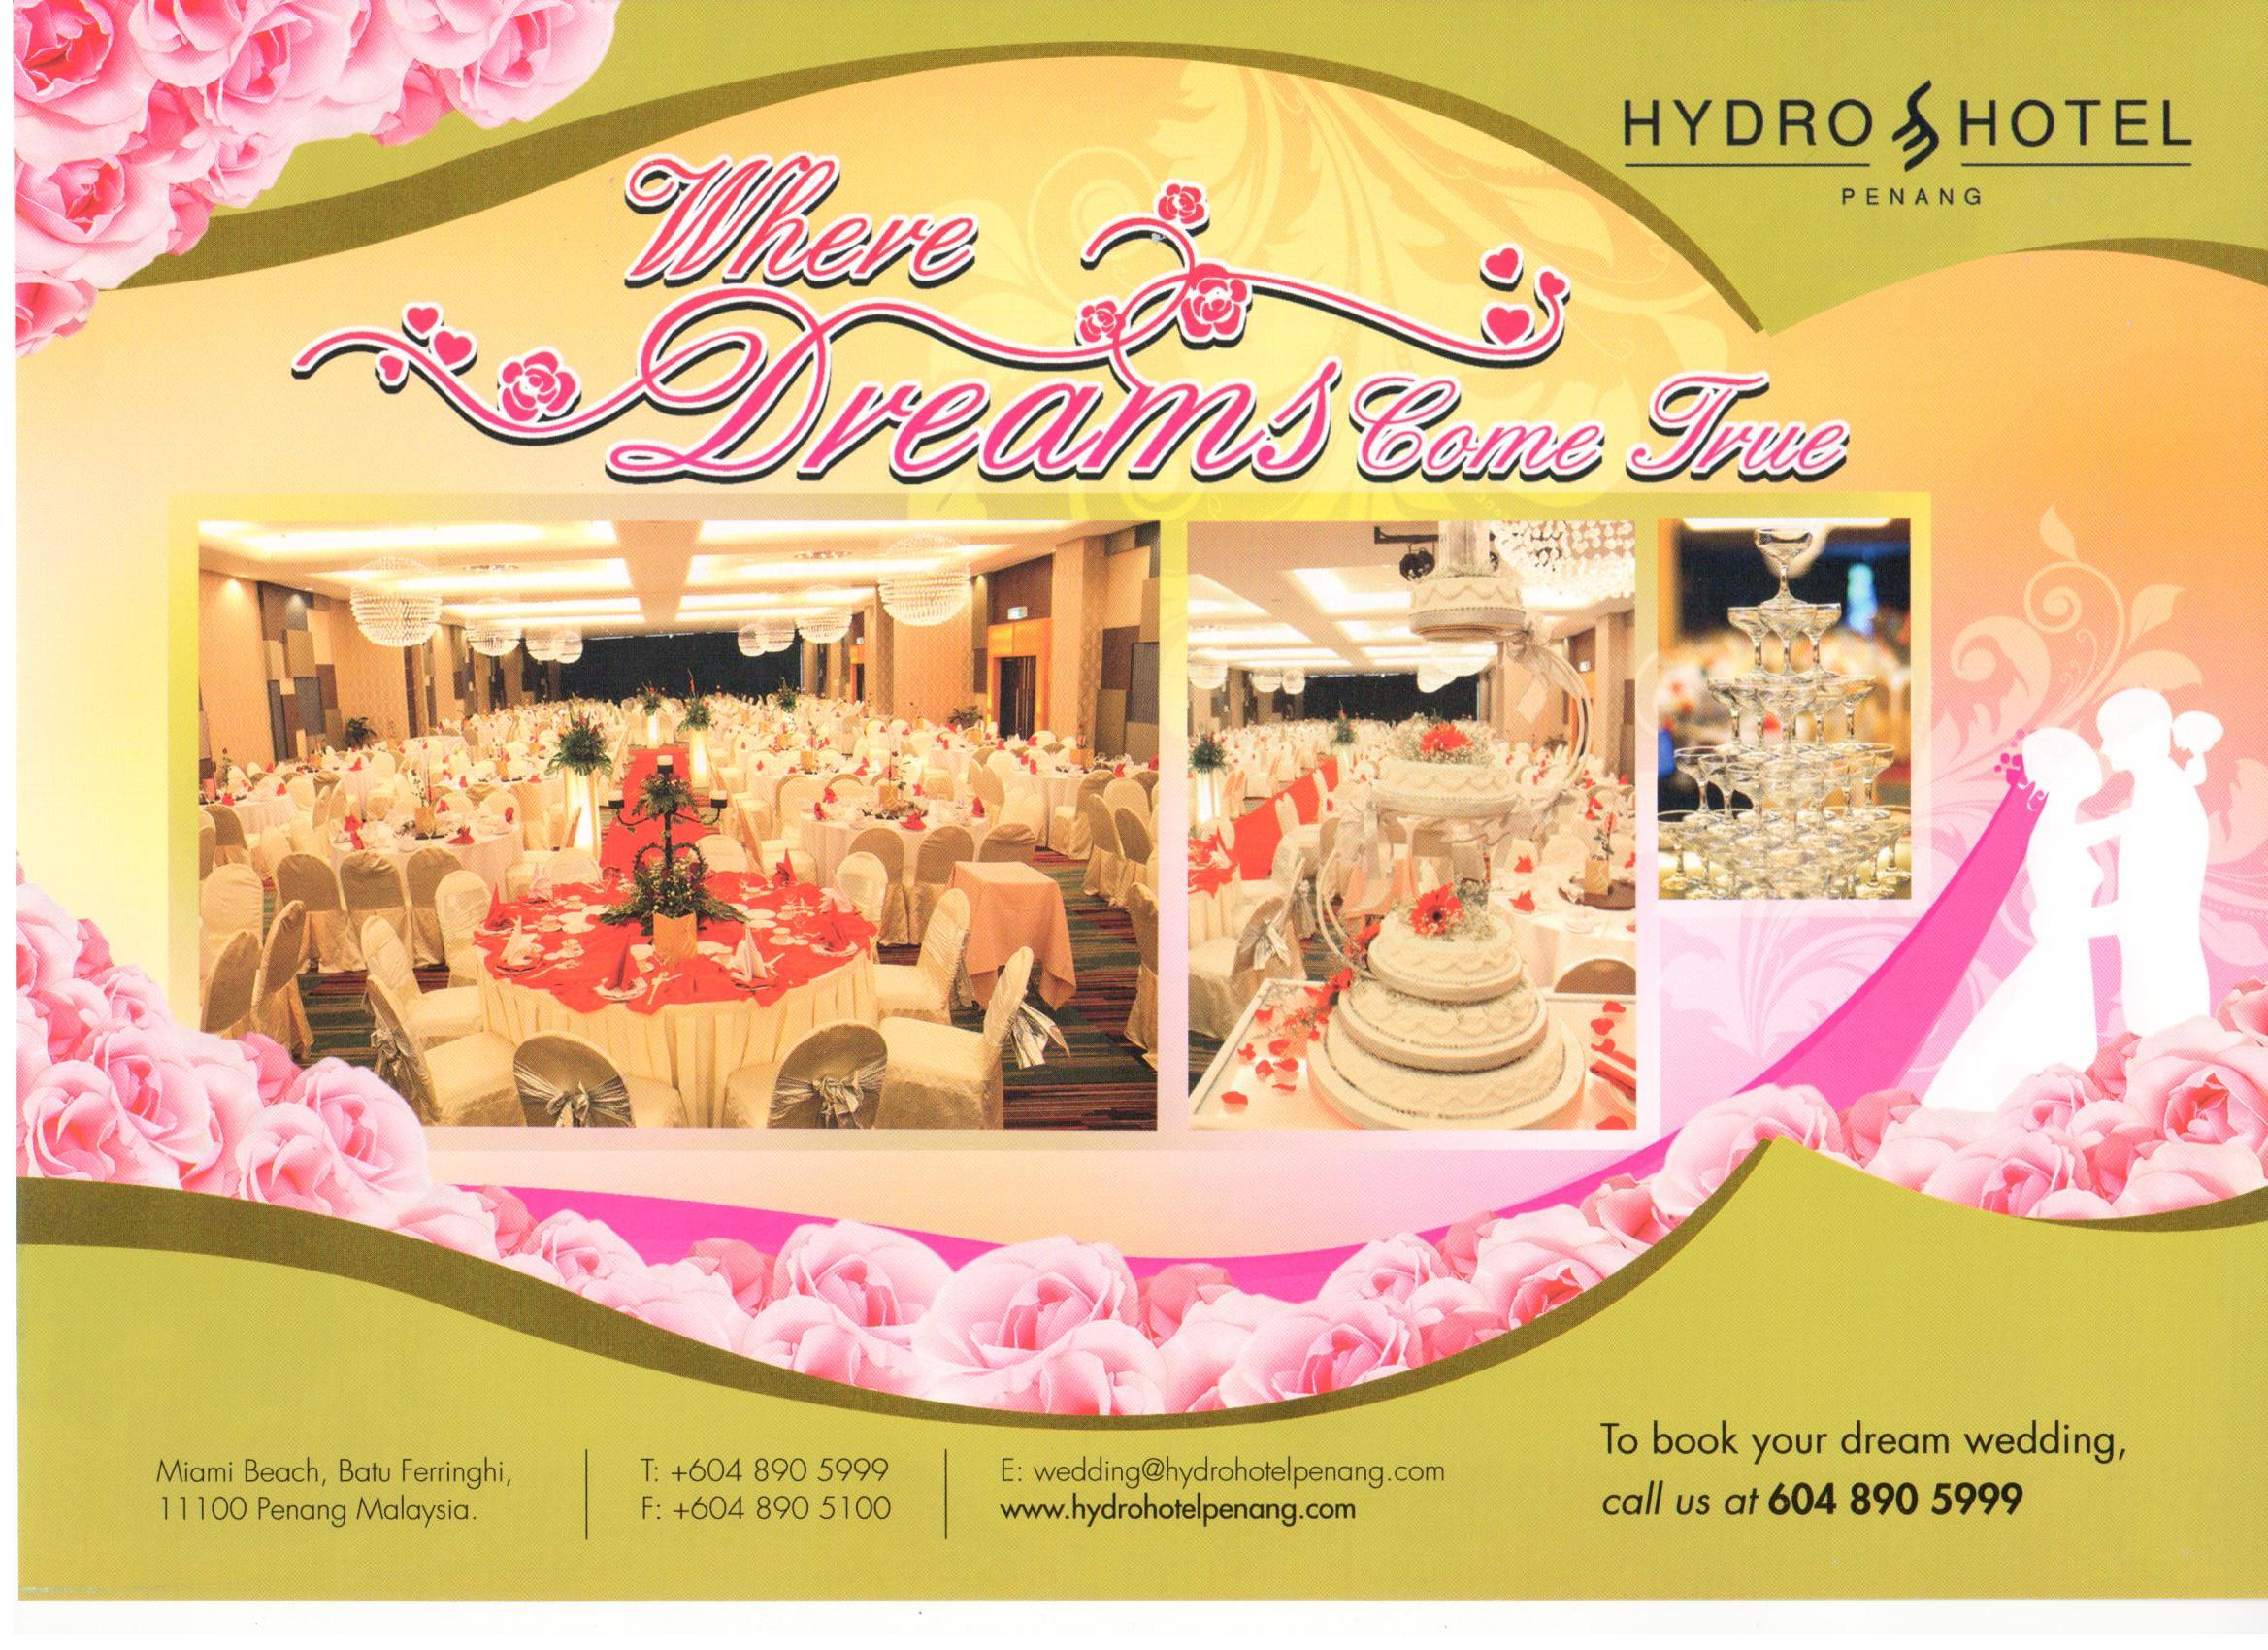 Plan a ceremony and wedding at Hydro Hotel